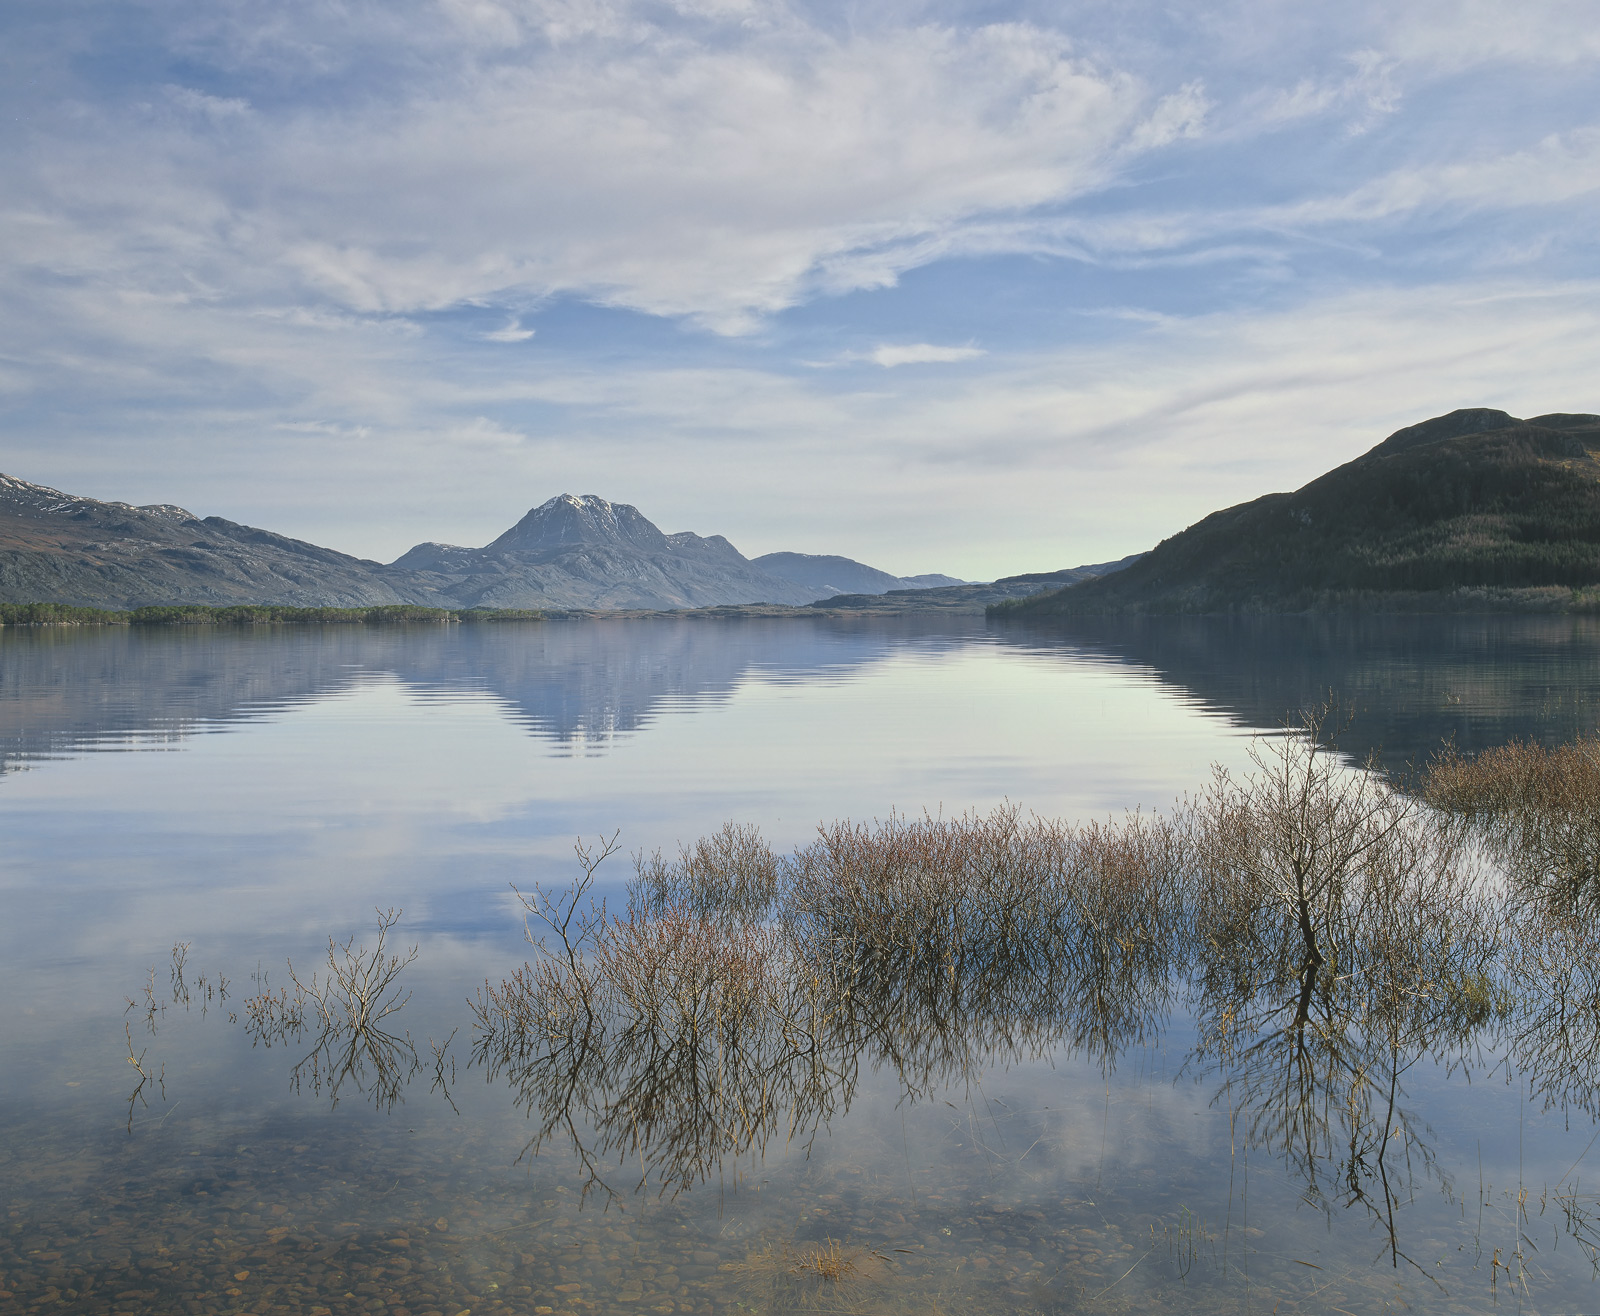 Slattadale is at the western end of Loch Maree and from there you can look across the sheltered bay towards mighty Slioch an...